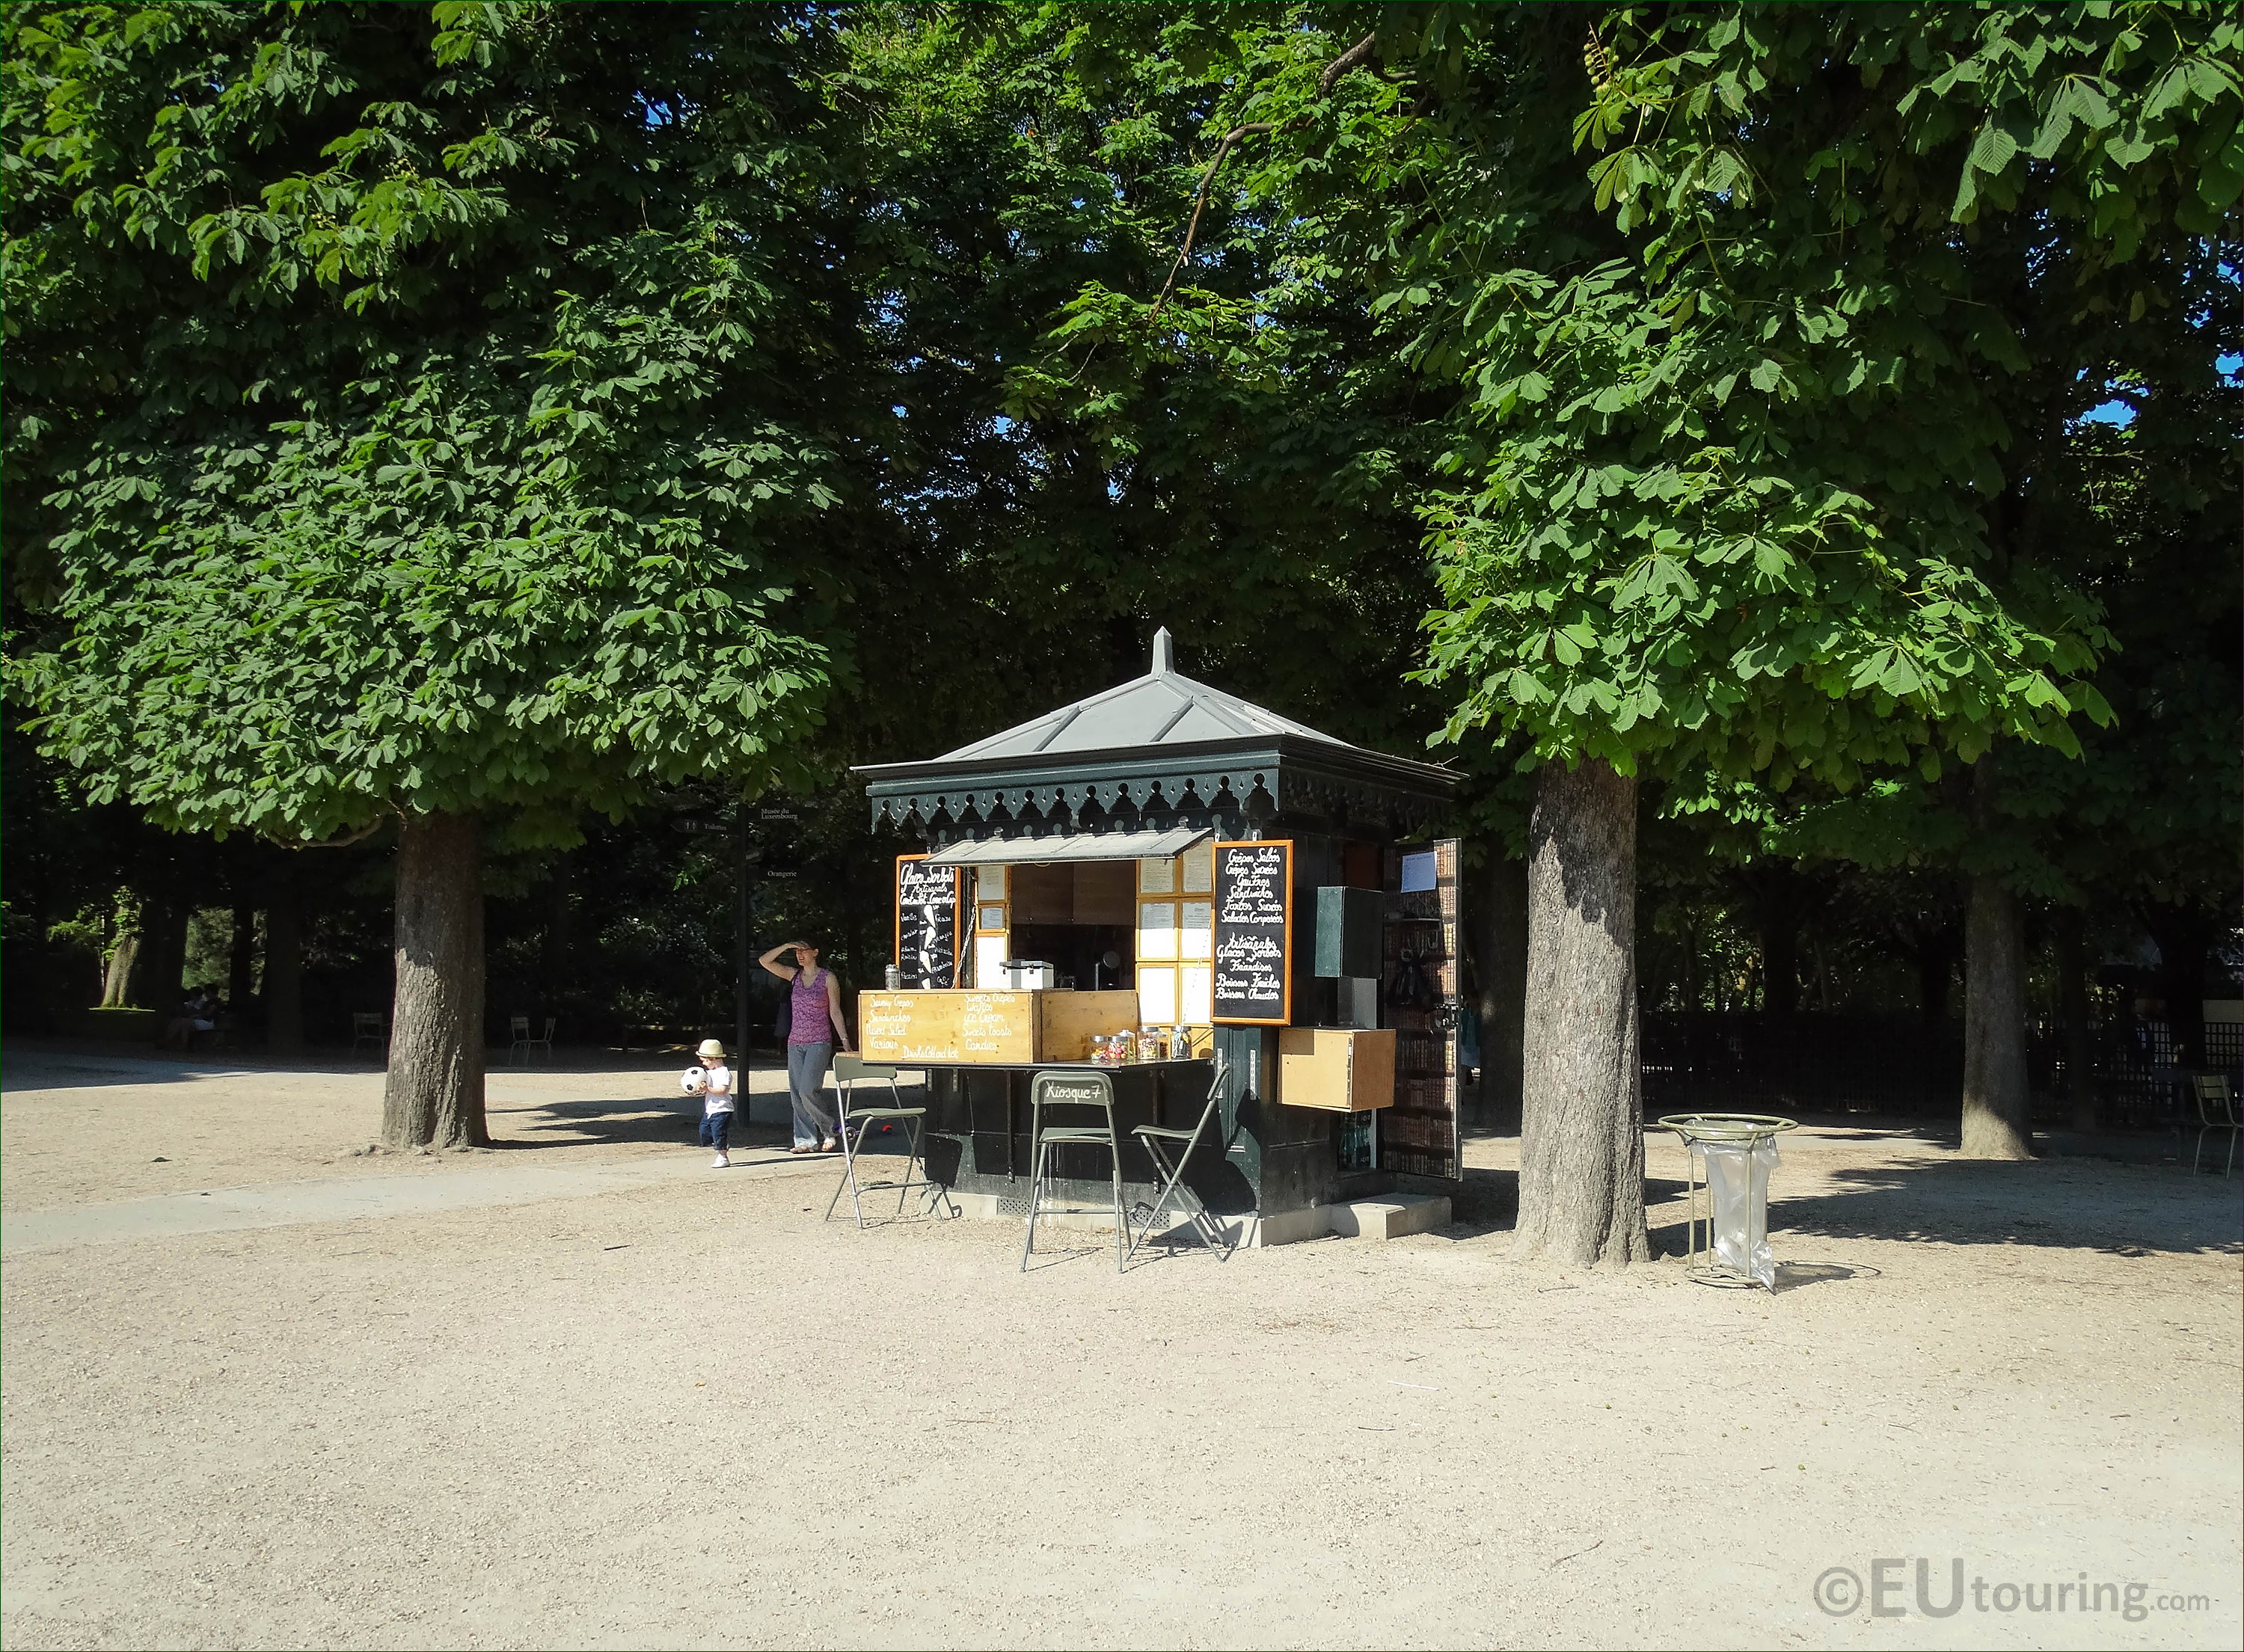 Photos of kiosk 7 in Jardin du Luxembourg - Page 24